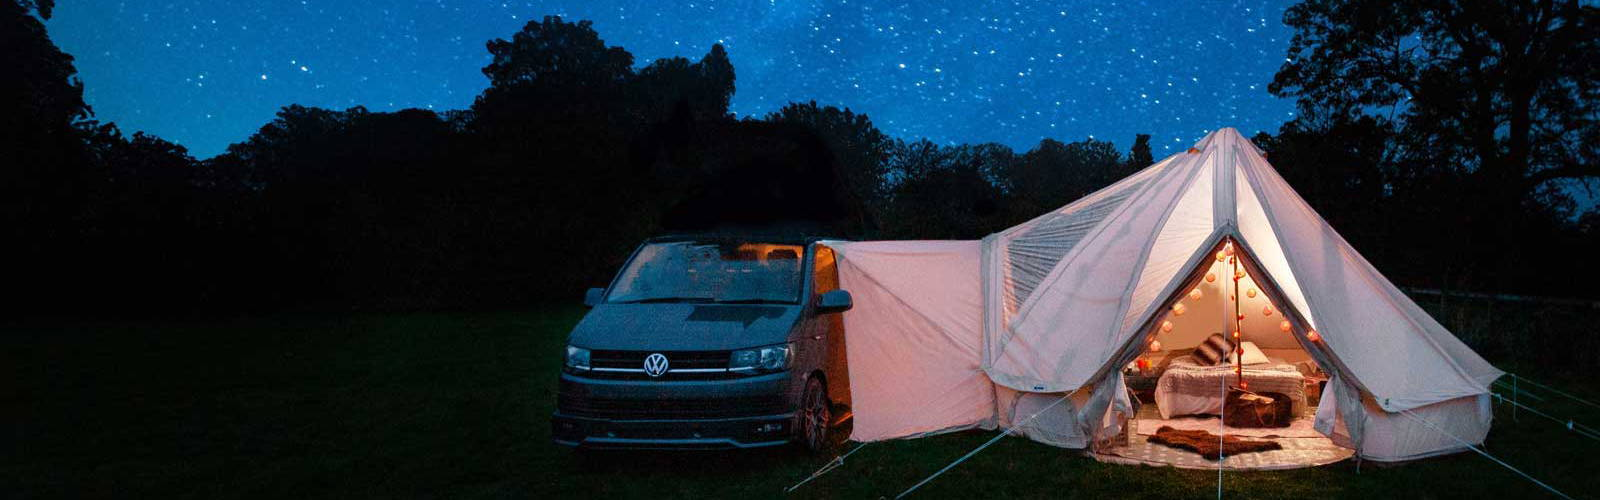 VW T6 attached to 5m cloudgazer glawning lit up with a background of stars